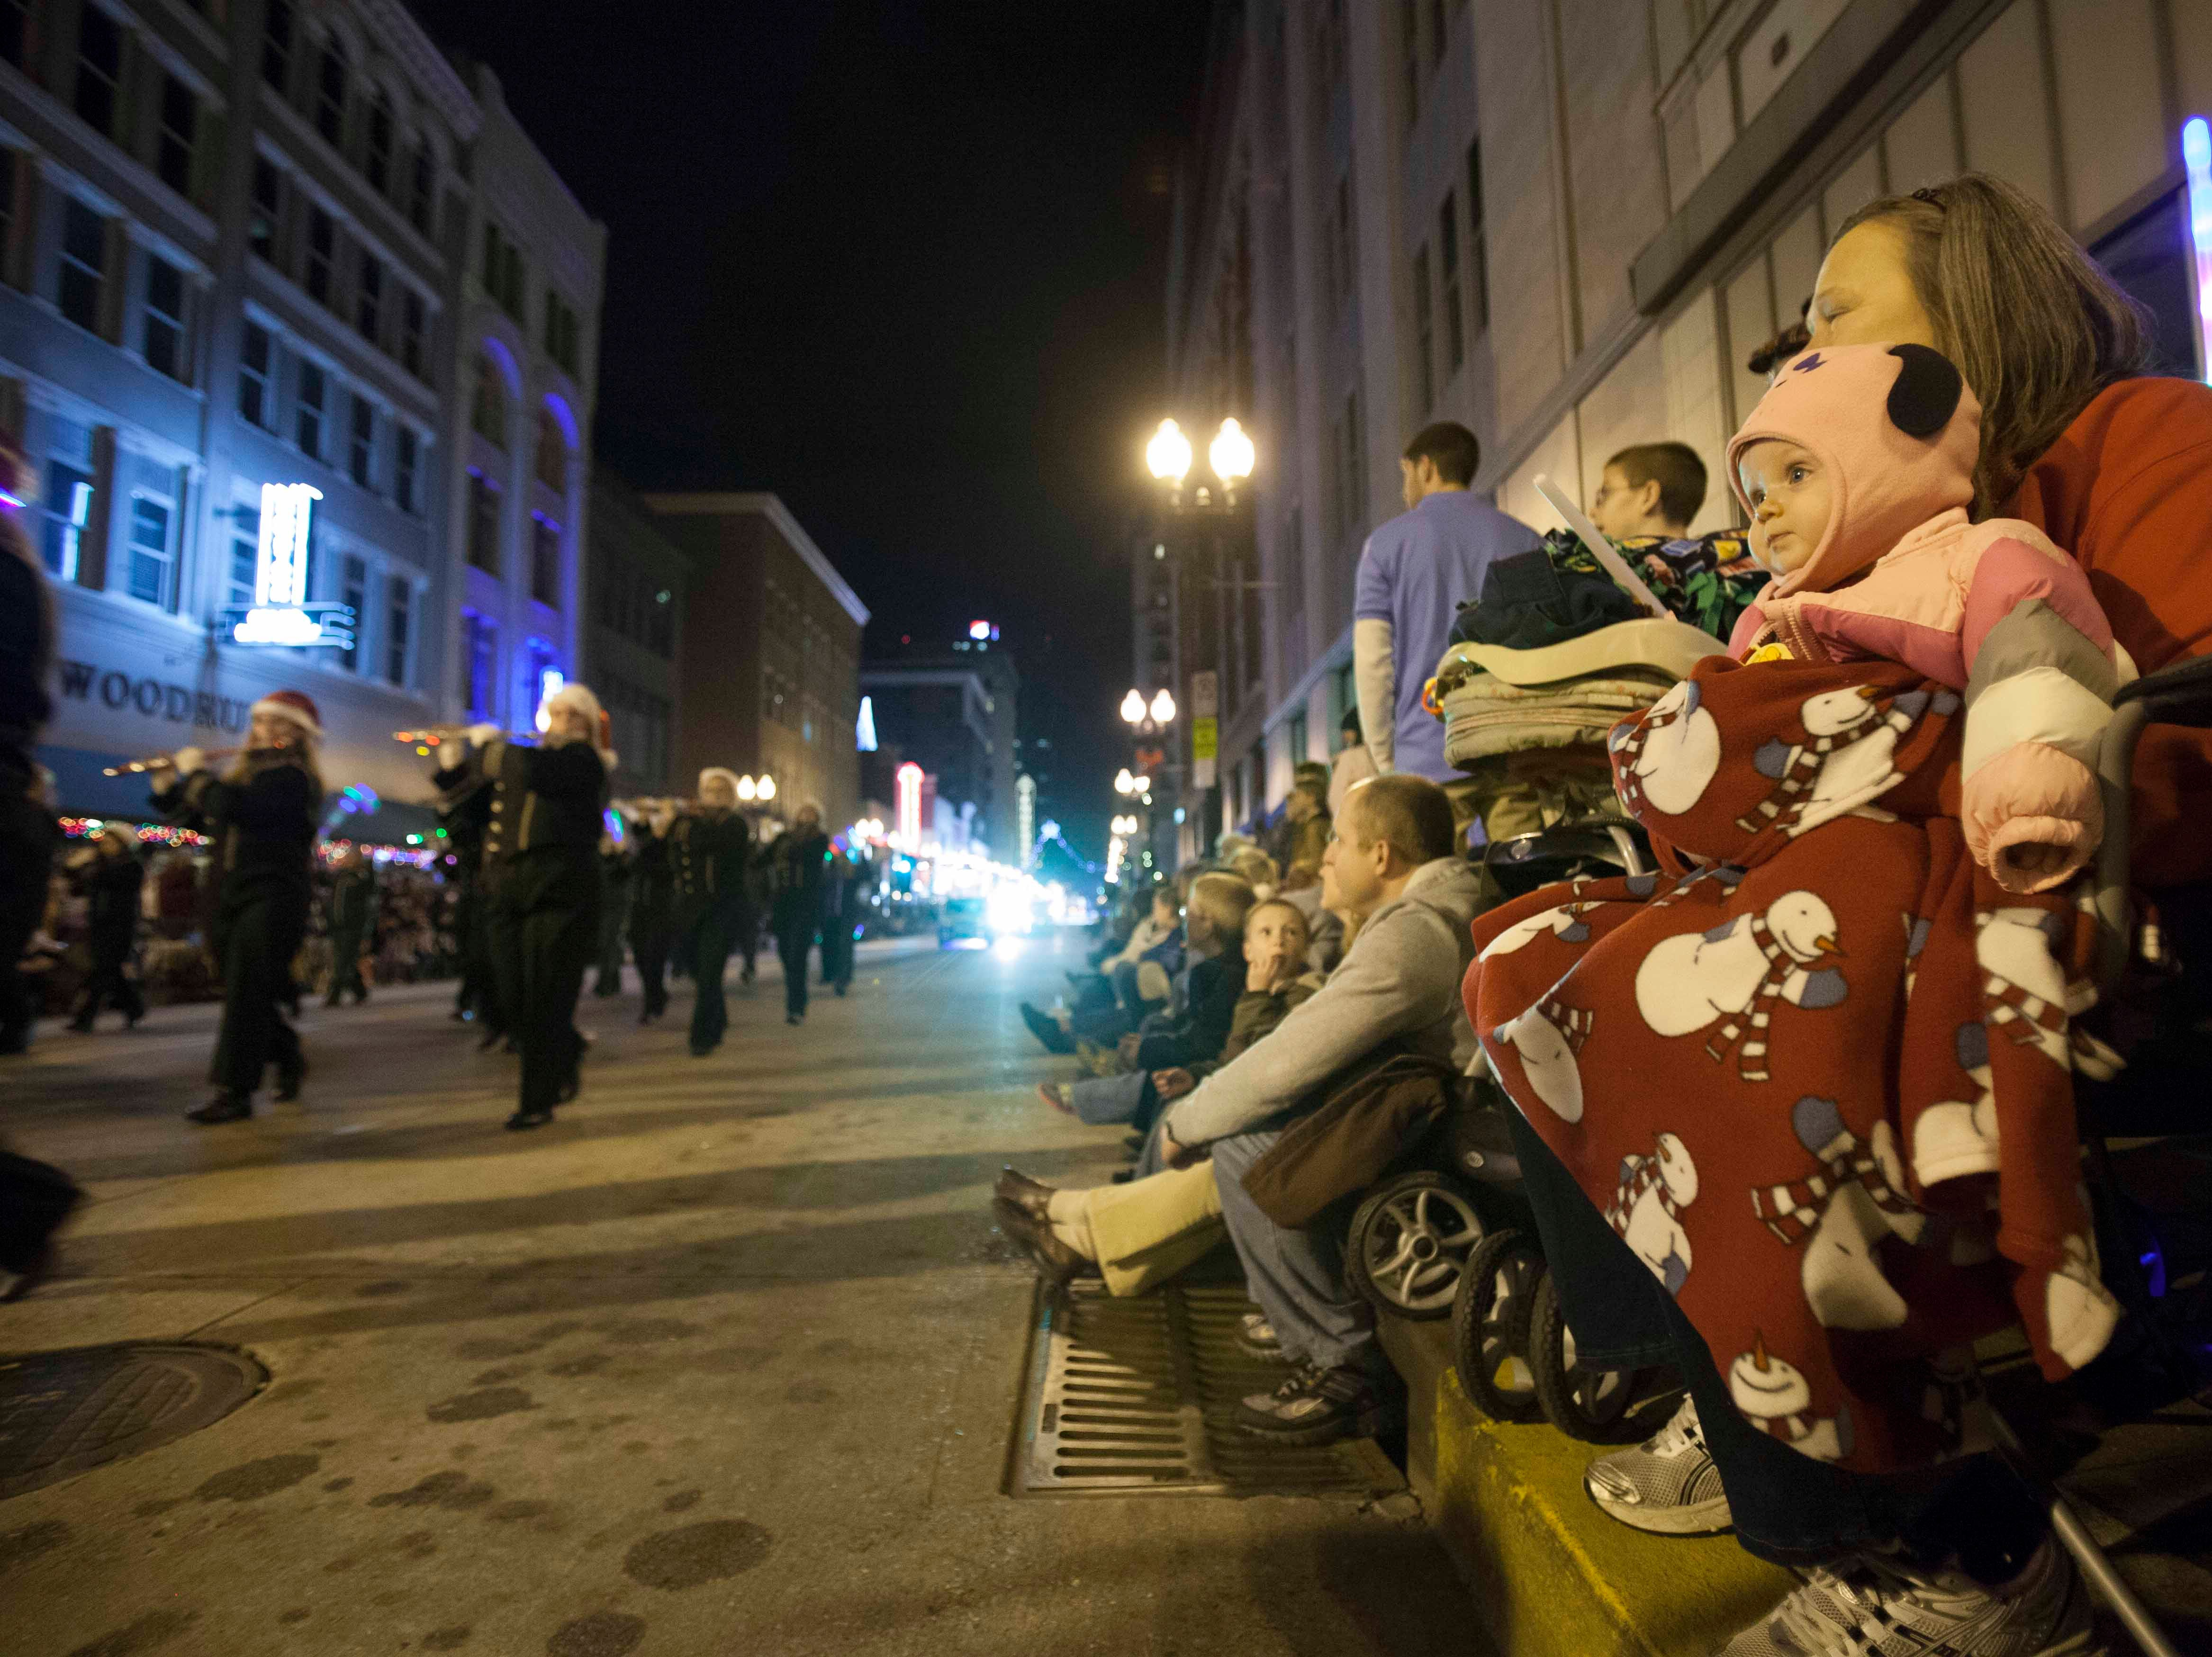 Chandler Bailey, right, watches the Christmas parade on Gay Street downtown as she is held by her grandmother Debbie Chandler, right, Friday, Dec. 7, 2012.